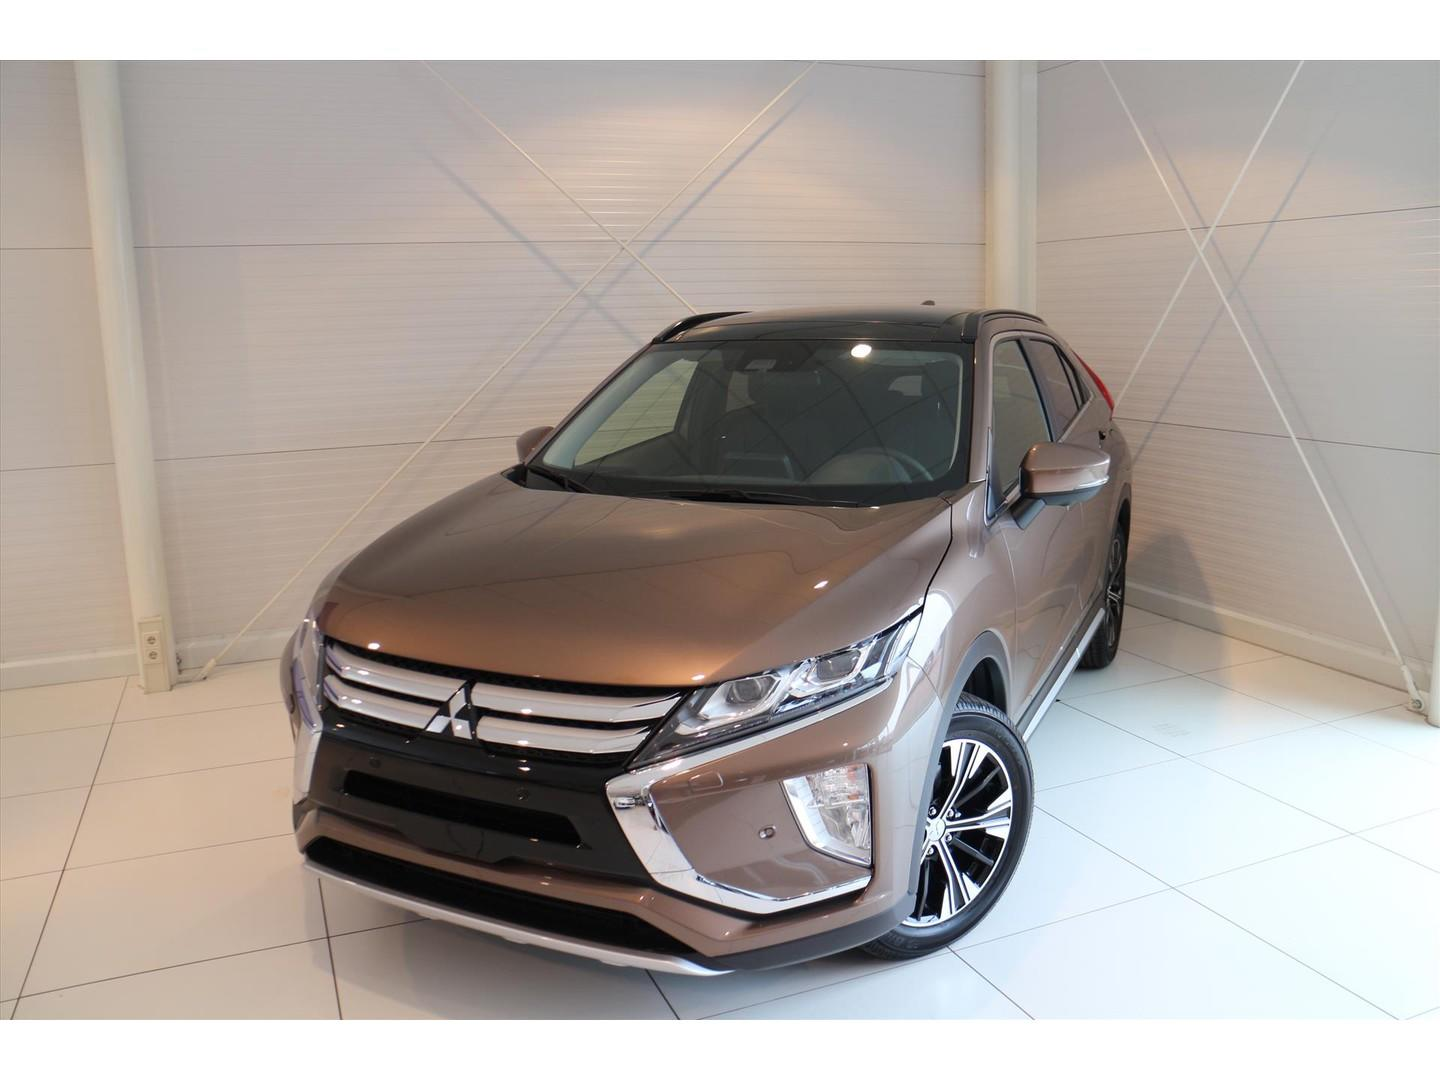 Mitsubishi Eclipse cross 1.5 cvt cleartec instyle